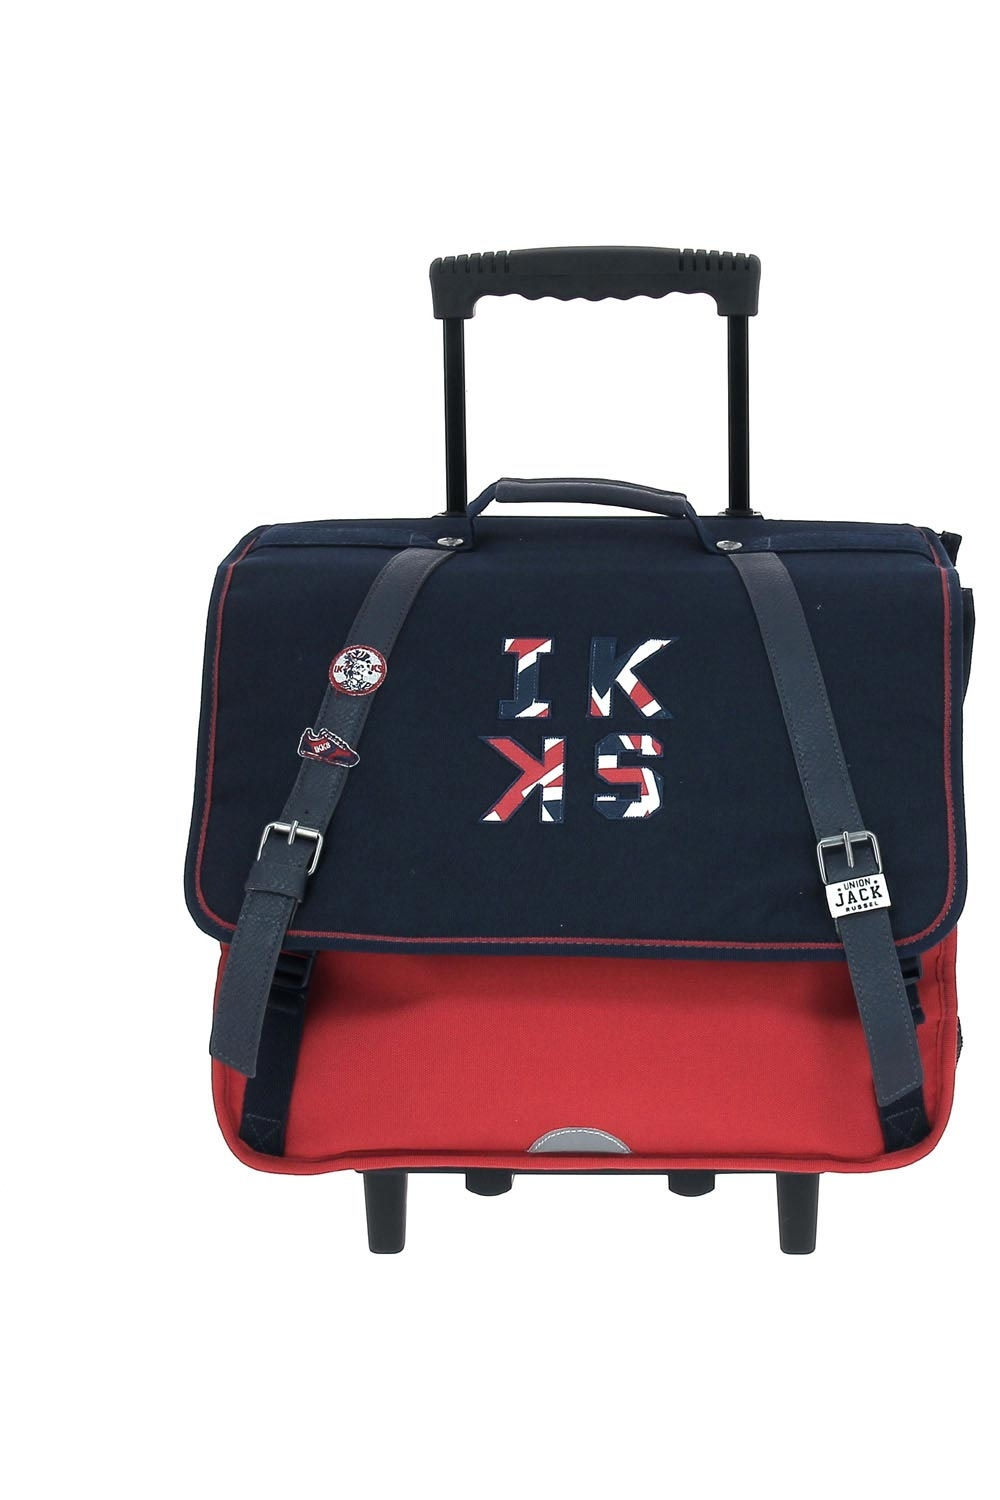 31fa53f29f ikks scolaire cartable trolley pour garcon 43854-41cm-trolley